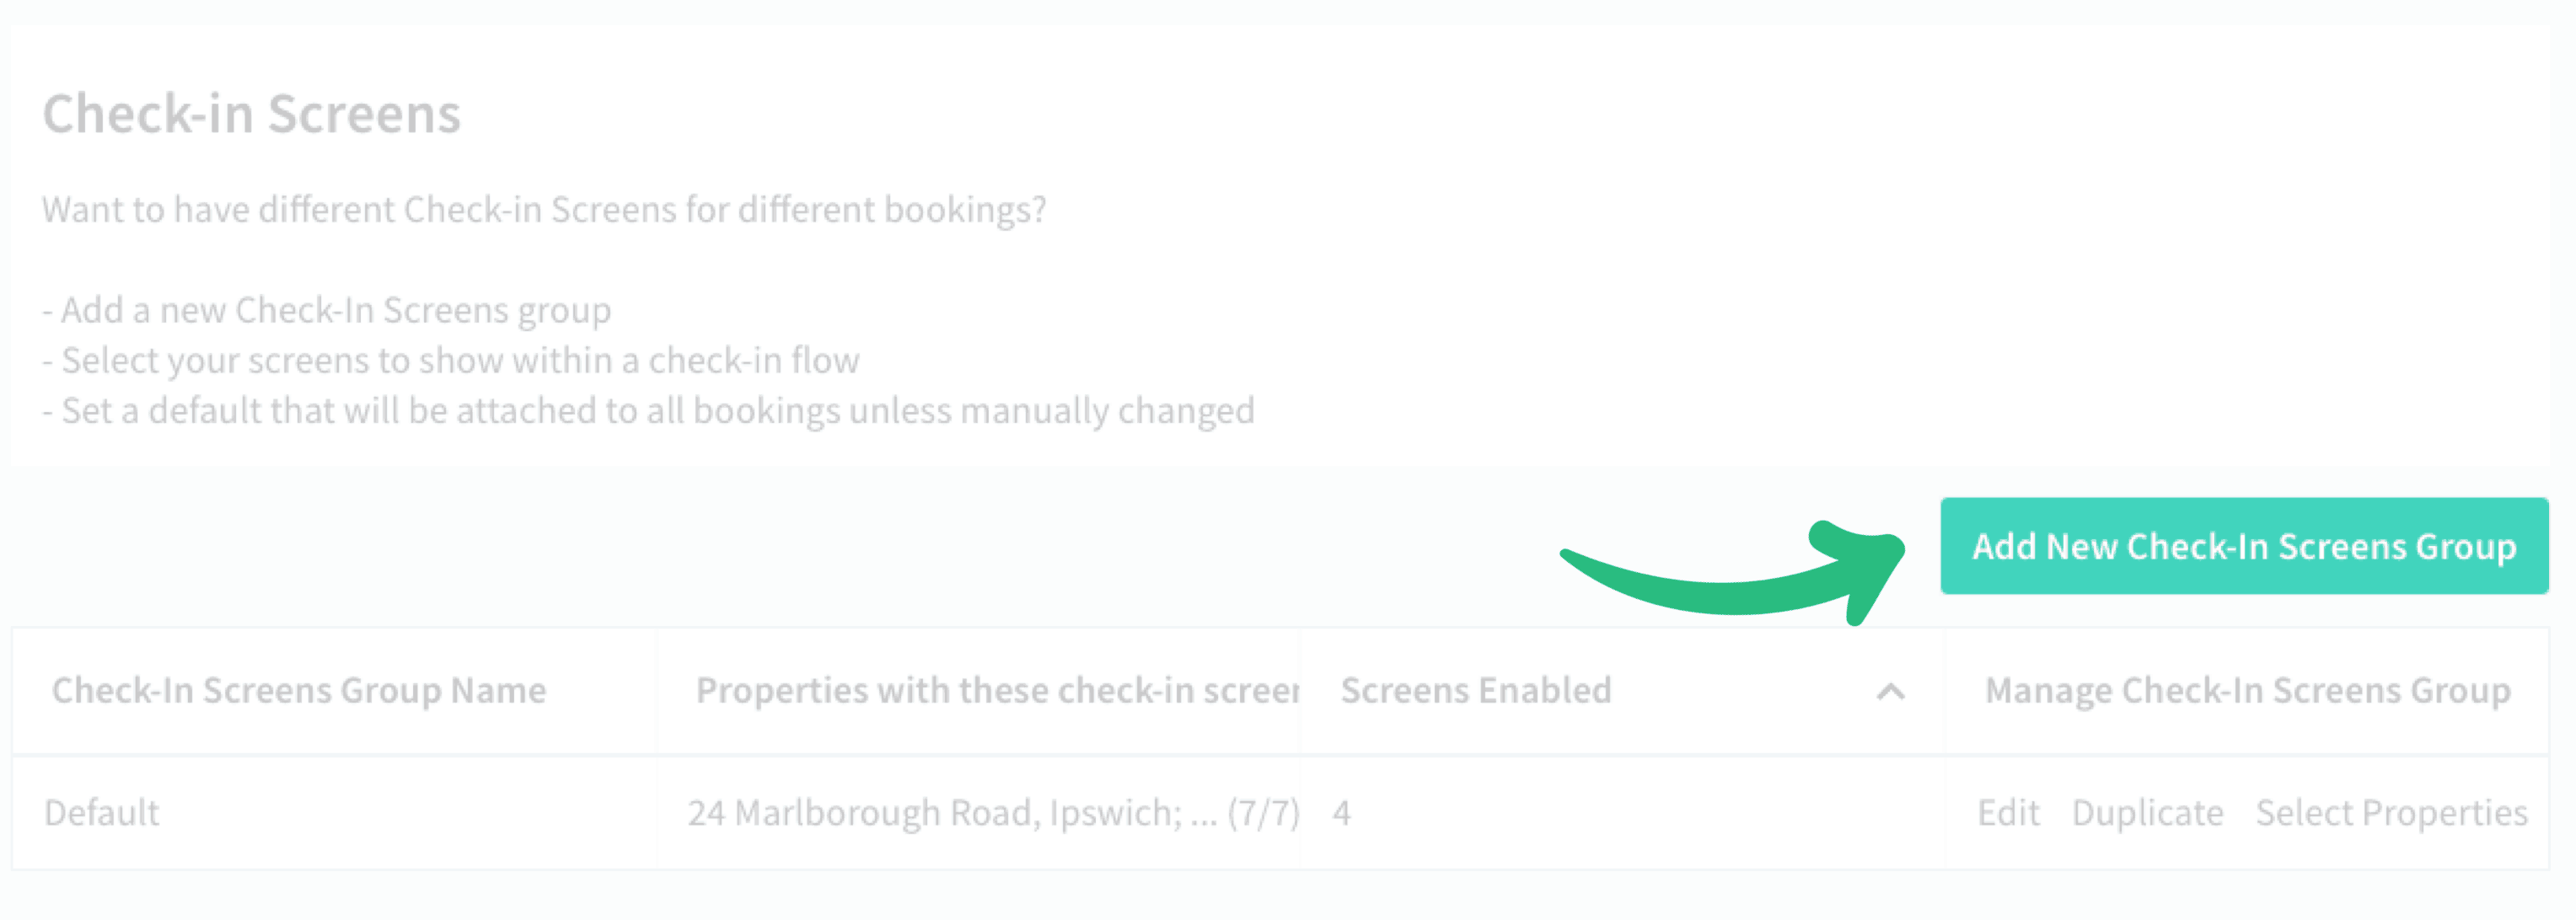 Creating a Check-in Screens group